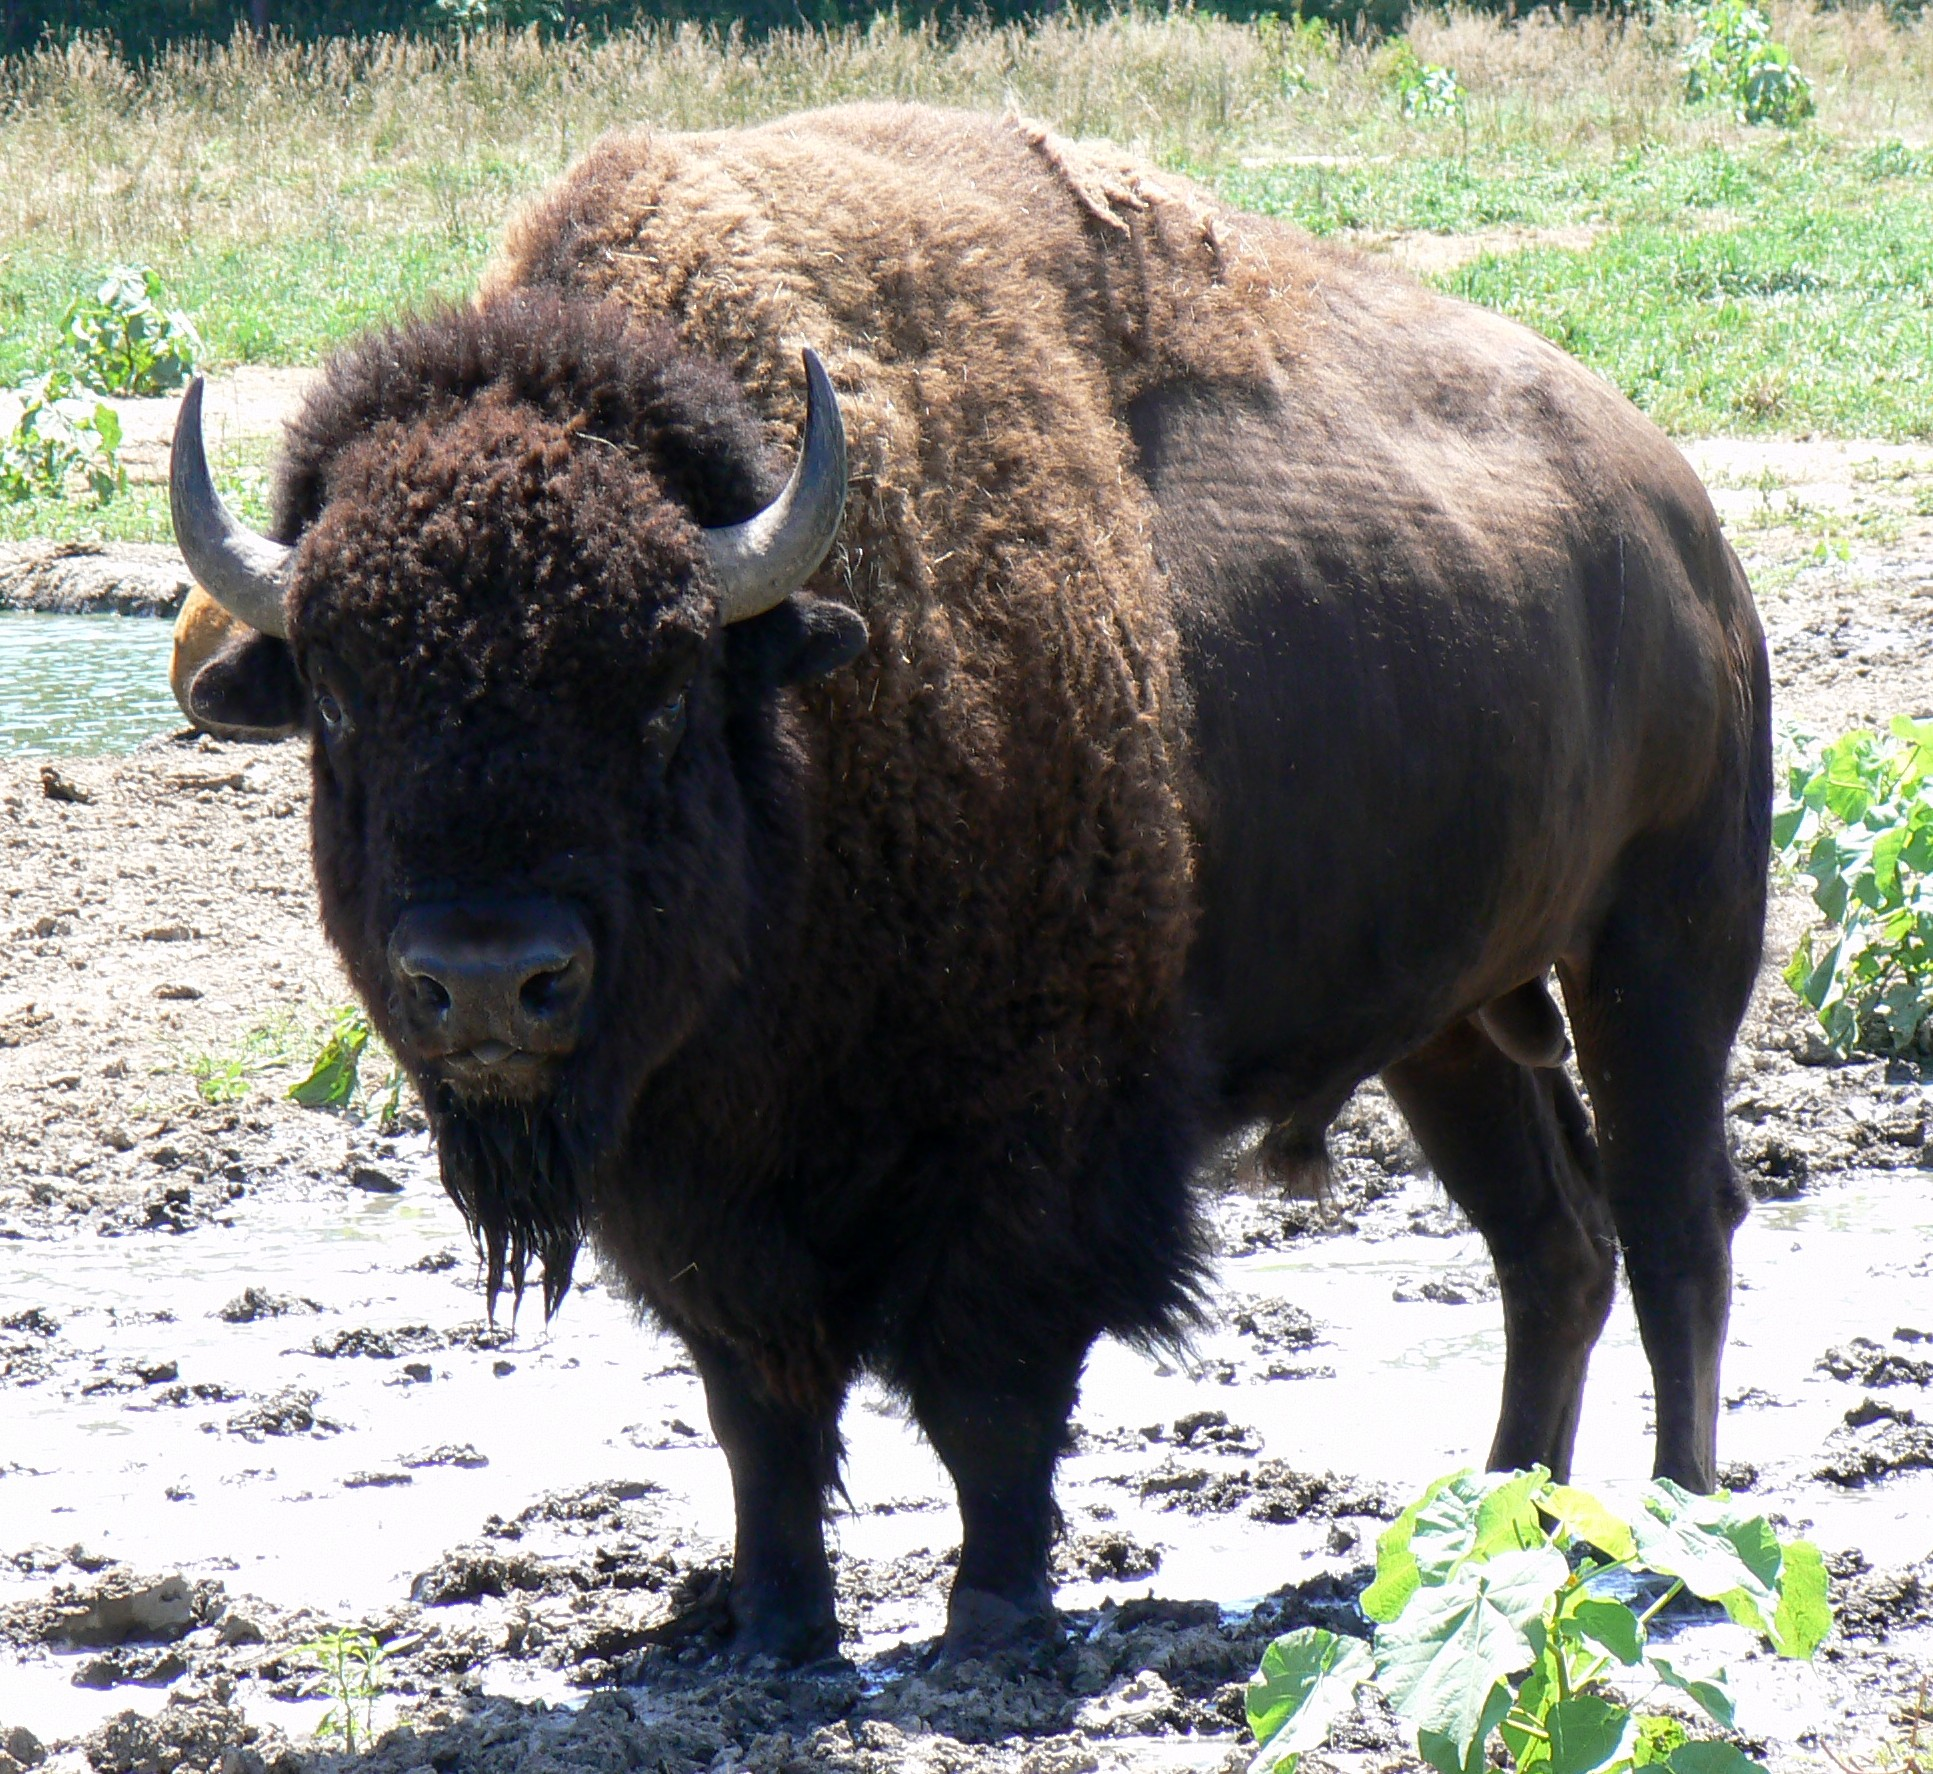 http://upload.wikimedia.org/wikipedia/commons/a/a8/Bison_Bull_in_Nebraska.jpg